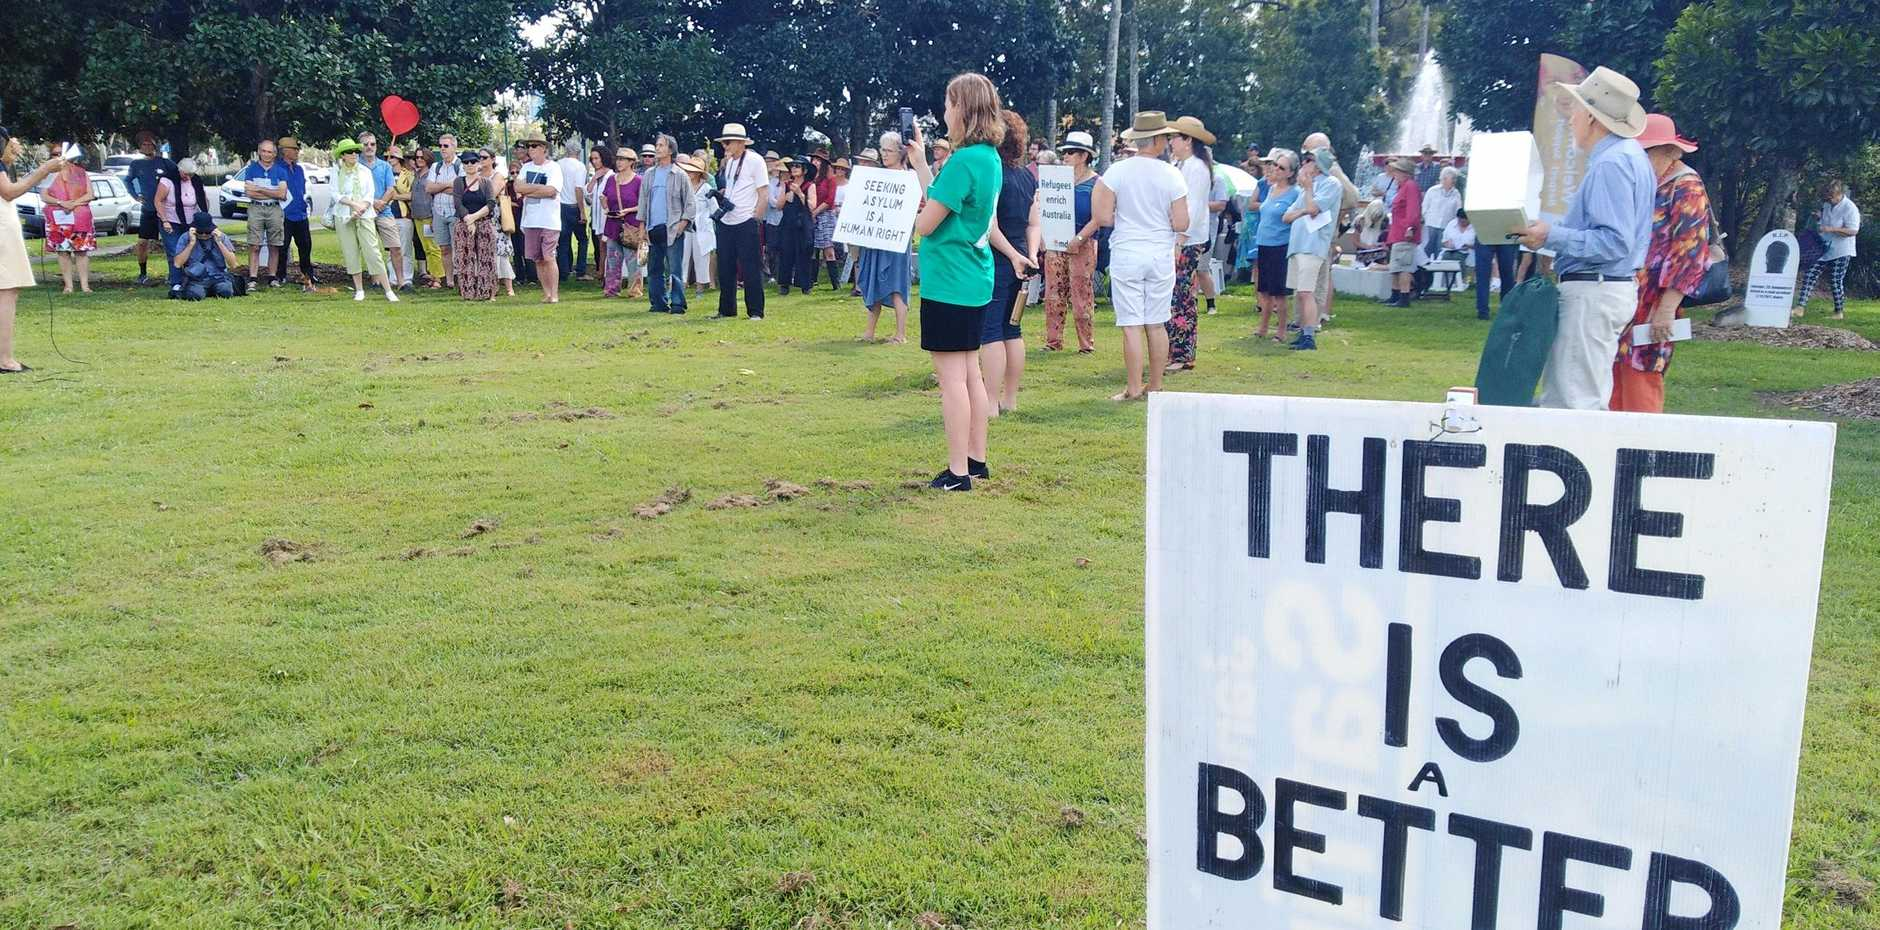 Columnist Betty Lowis weighs in on the refugee and migrant issue.